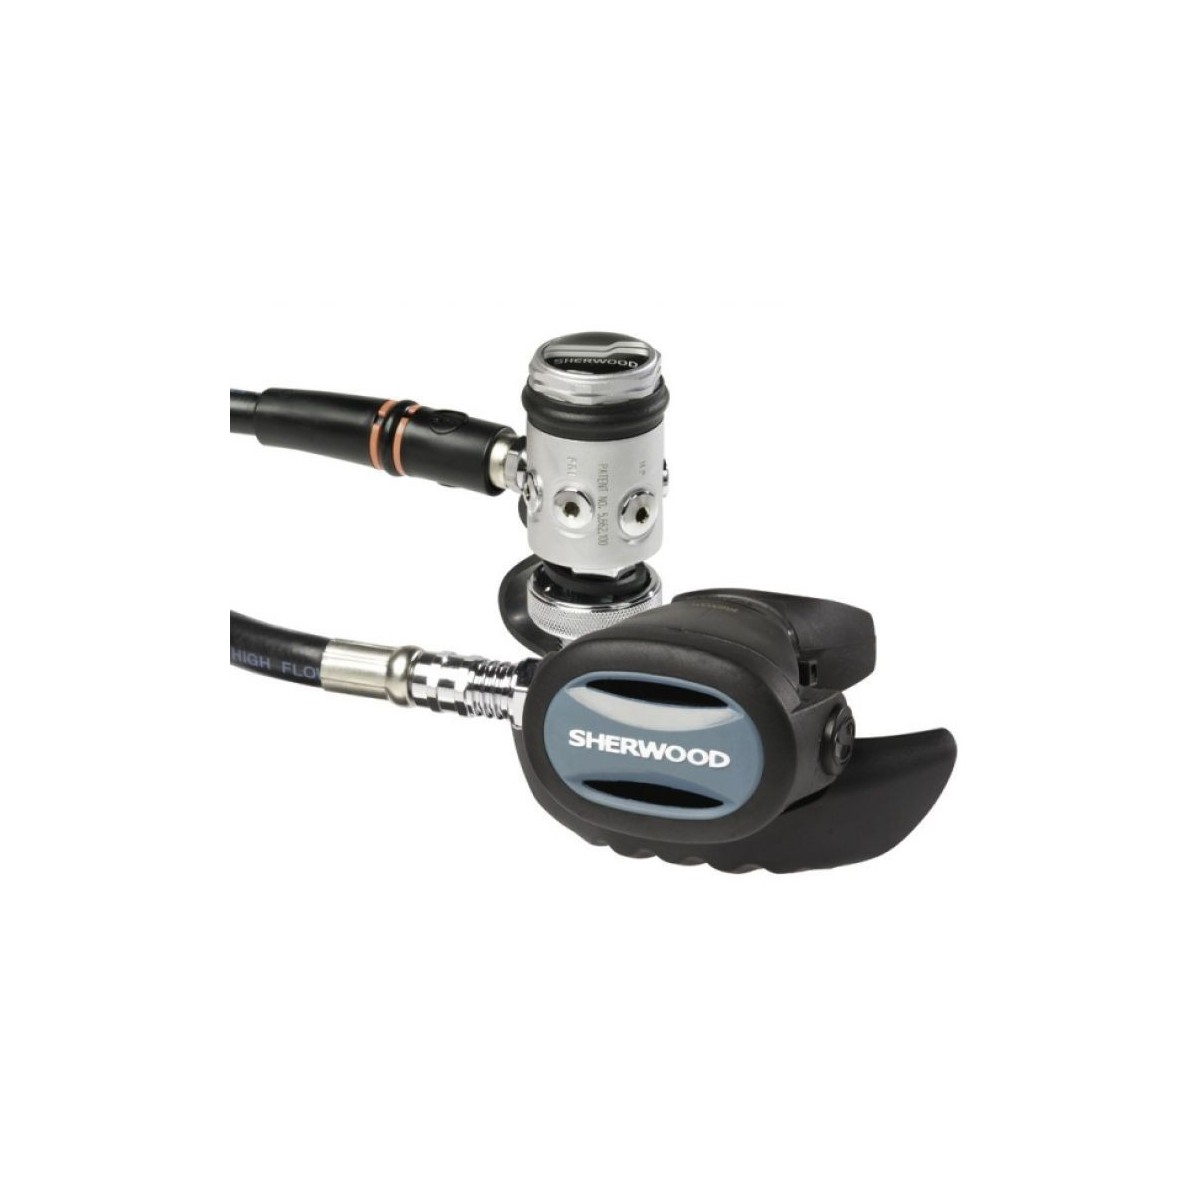 Sherwood Oasis Pro Scuba Regulator